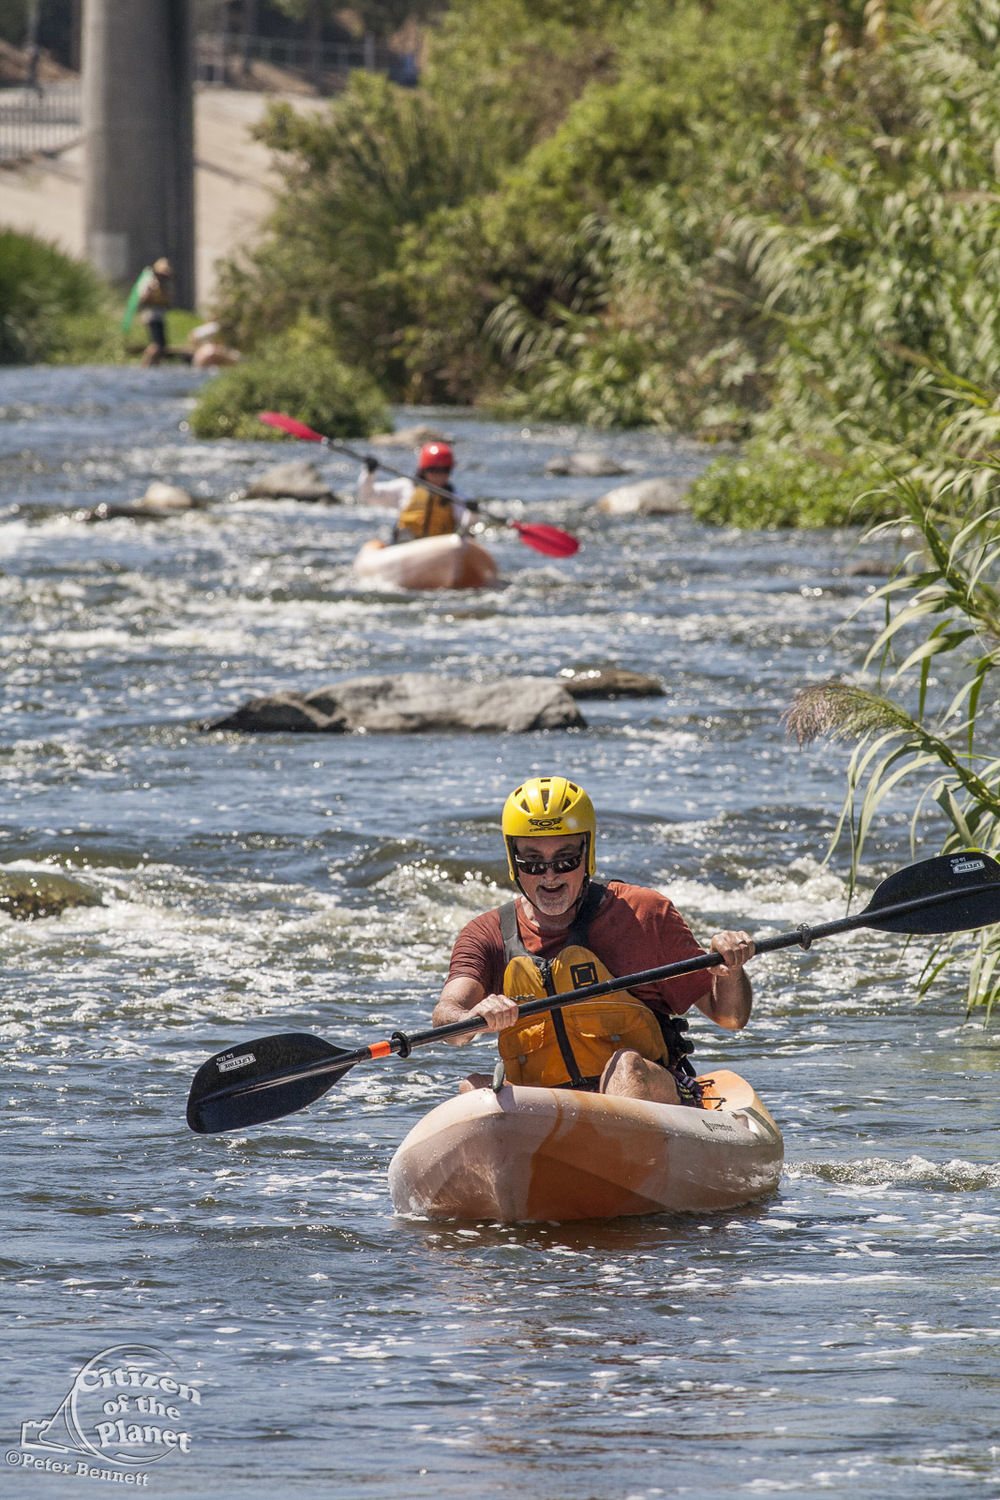 US_CA_48_3880_la_river_boat_race.jpg